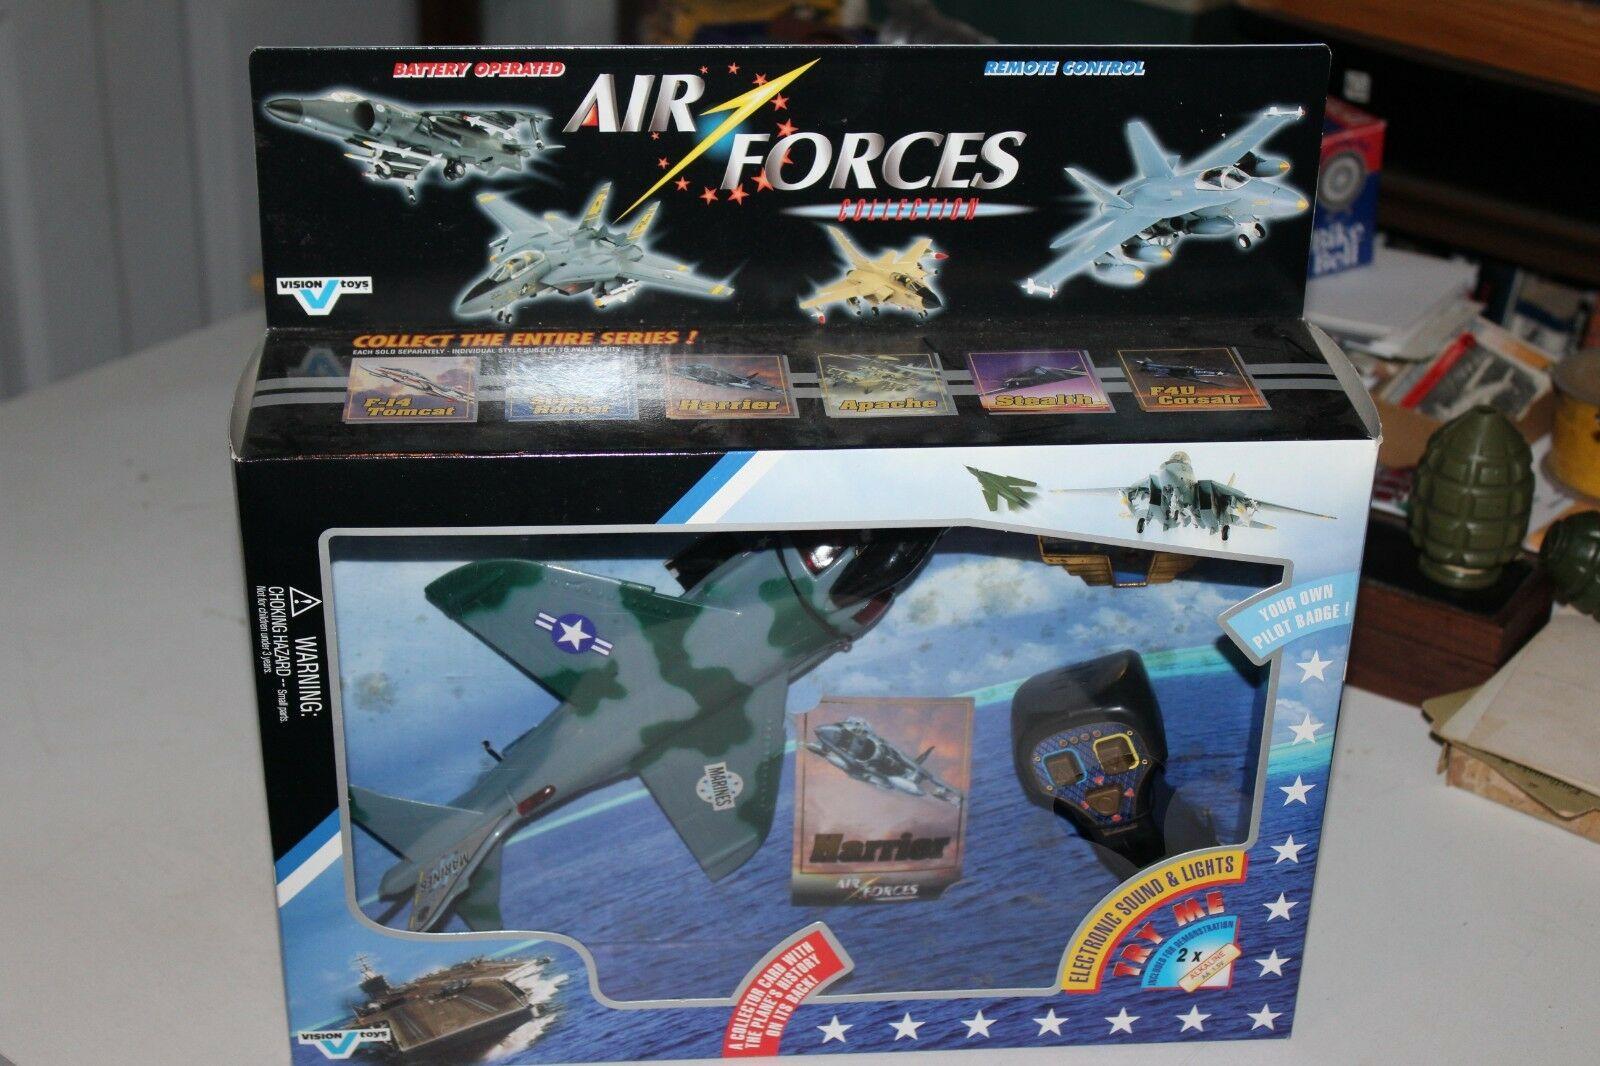 VERY NICE VISION TOYS BATTERY OP REMOTE MARINES HARRIER JET MIB